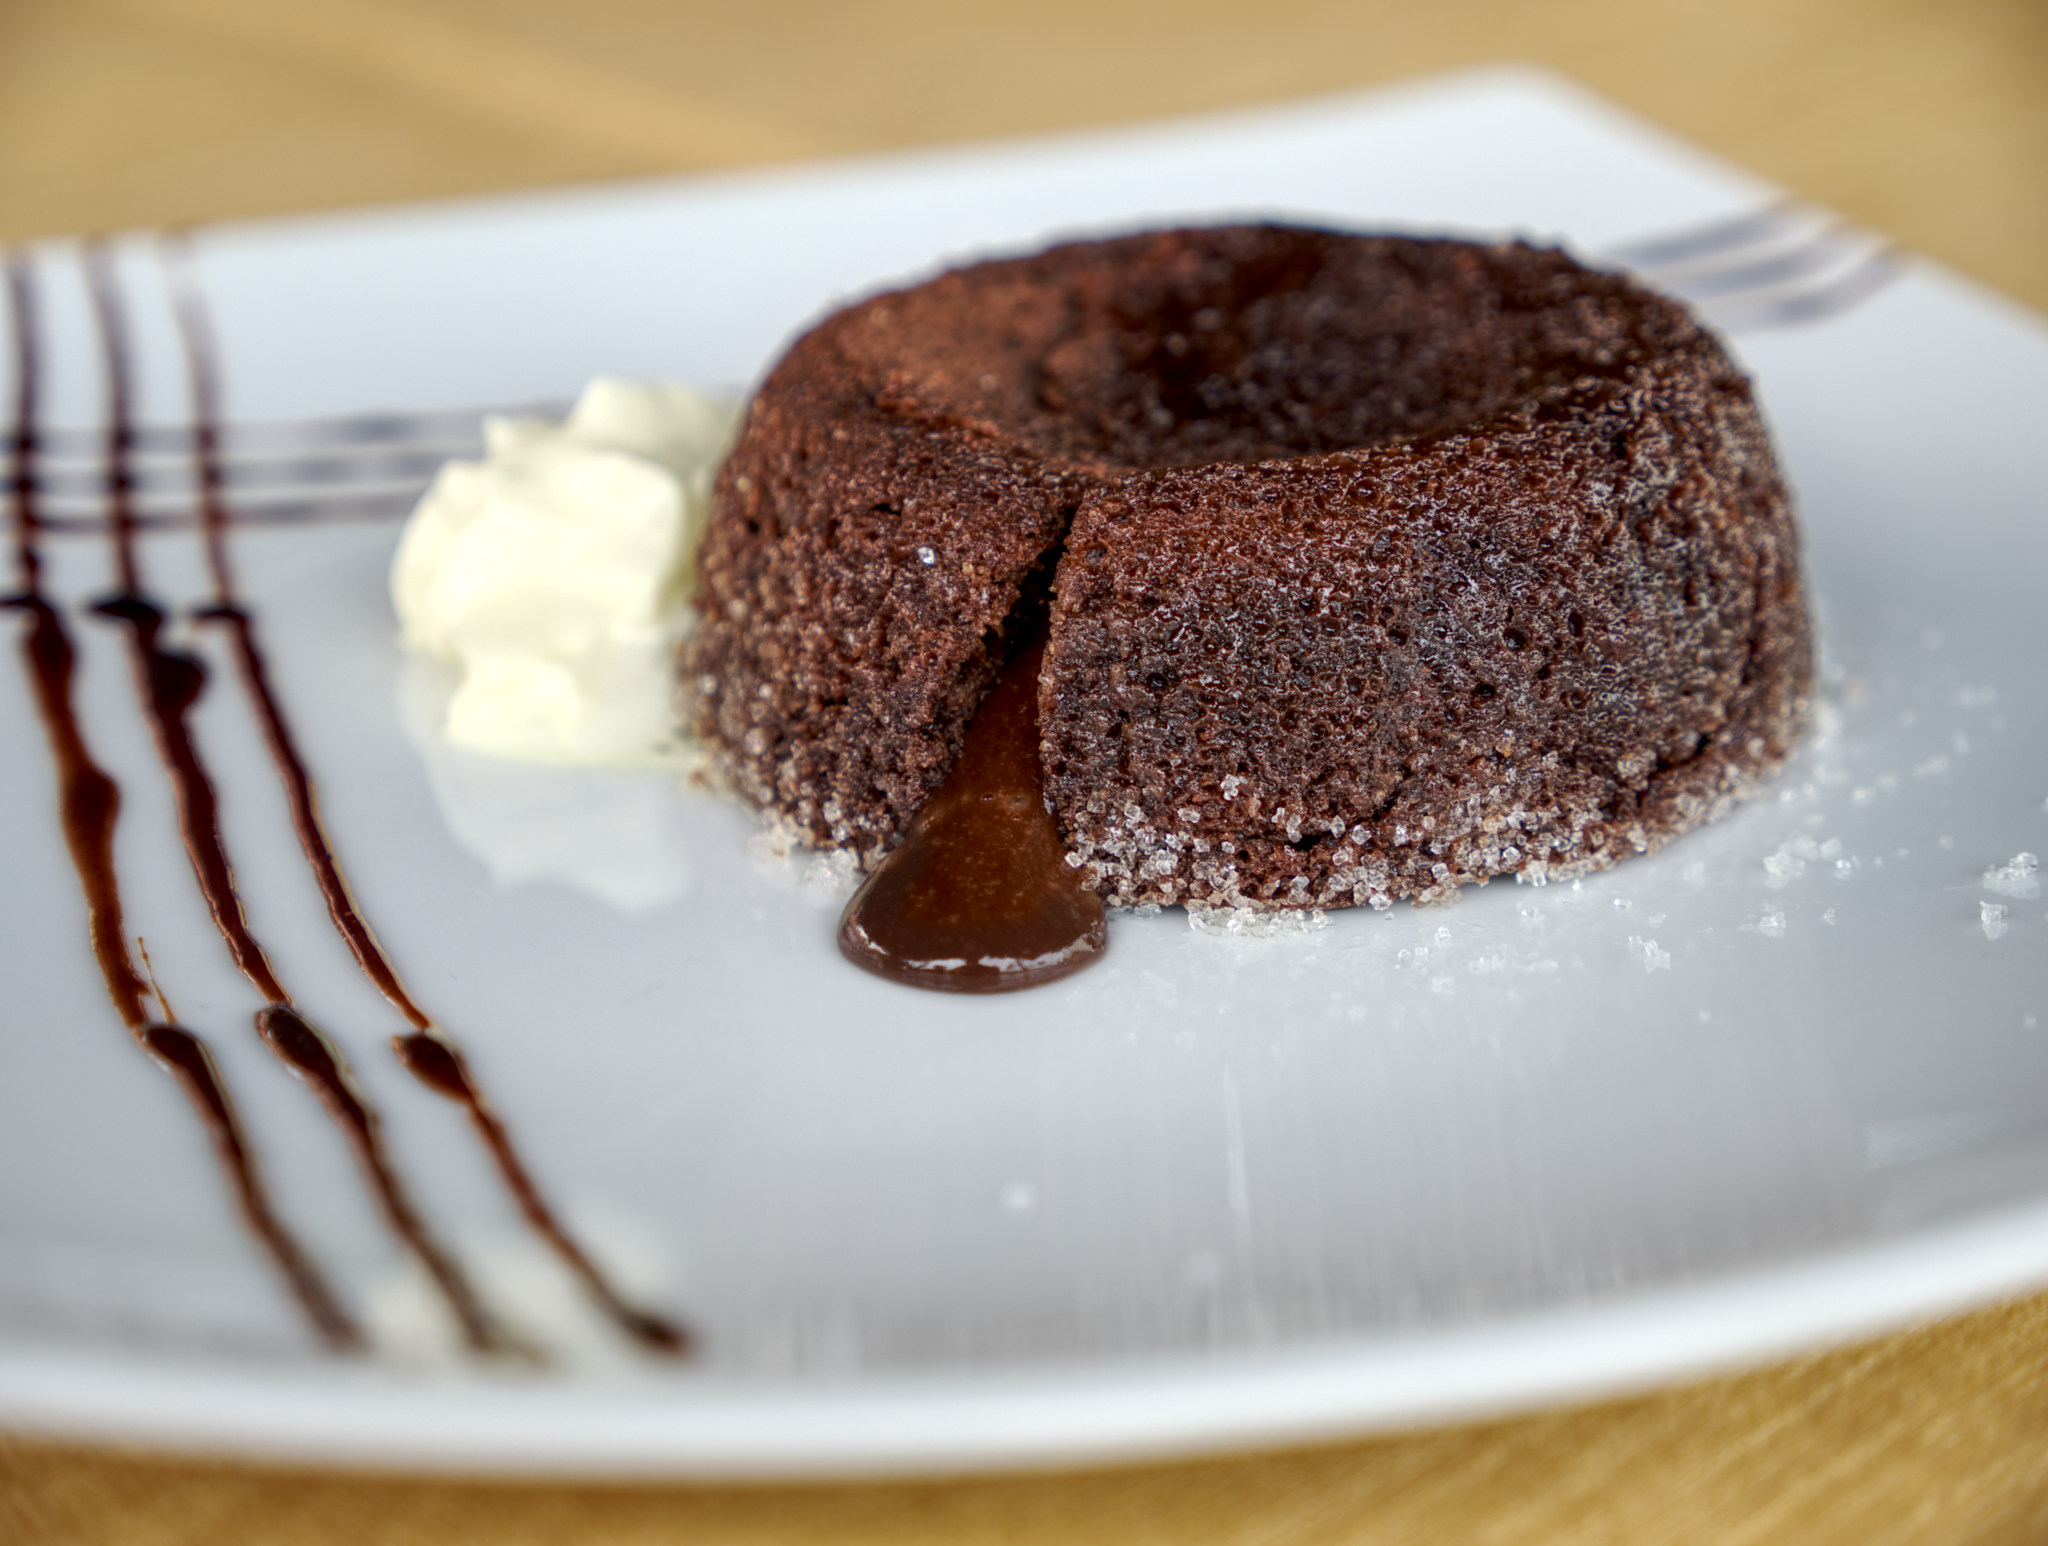 photograph of baked lava cake dessert opened with sauce